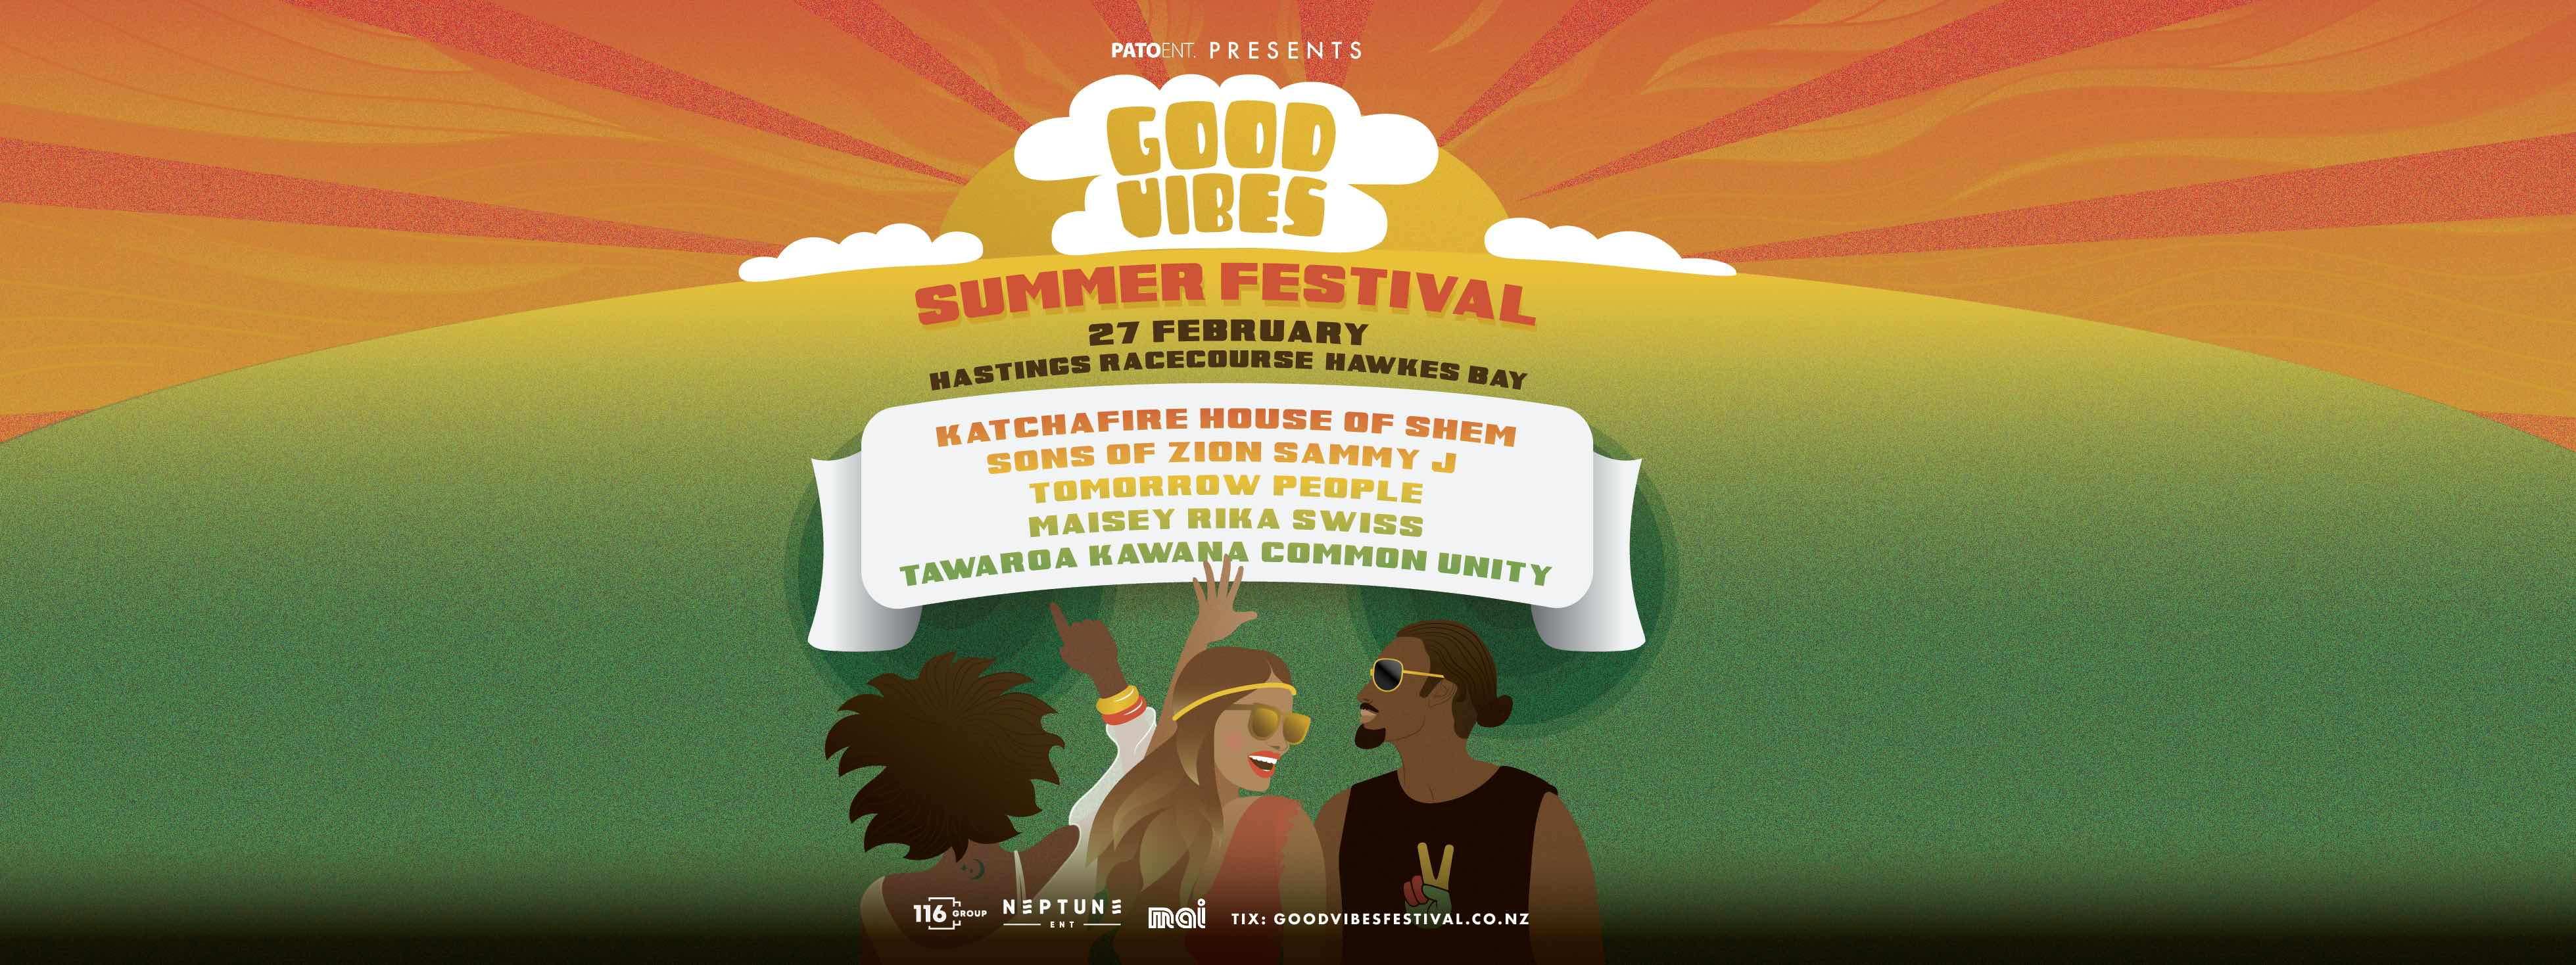 Tickets for Good Vibes Summer Festival | Hawkes Bay in Hastings from Ticketspace